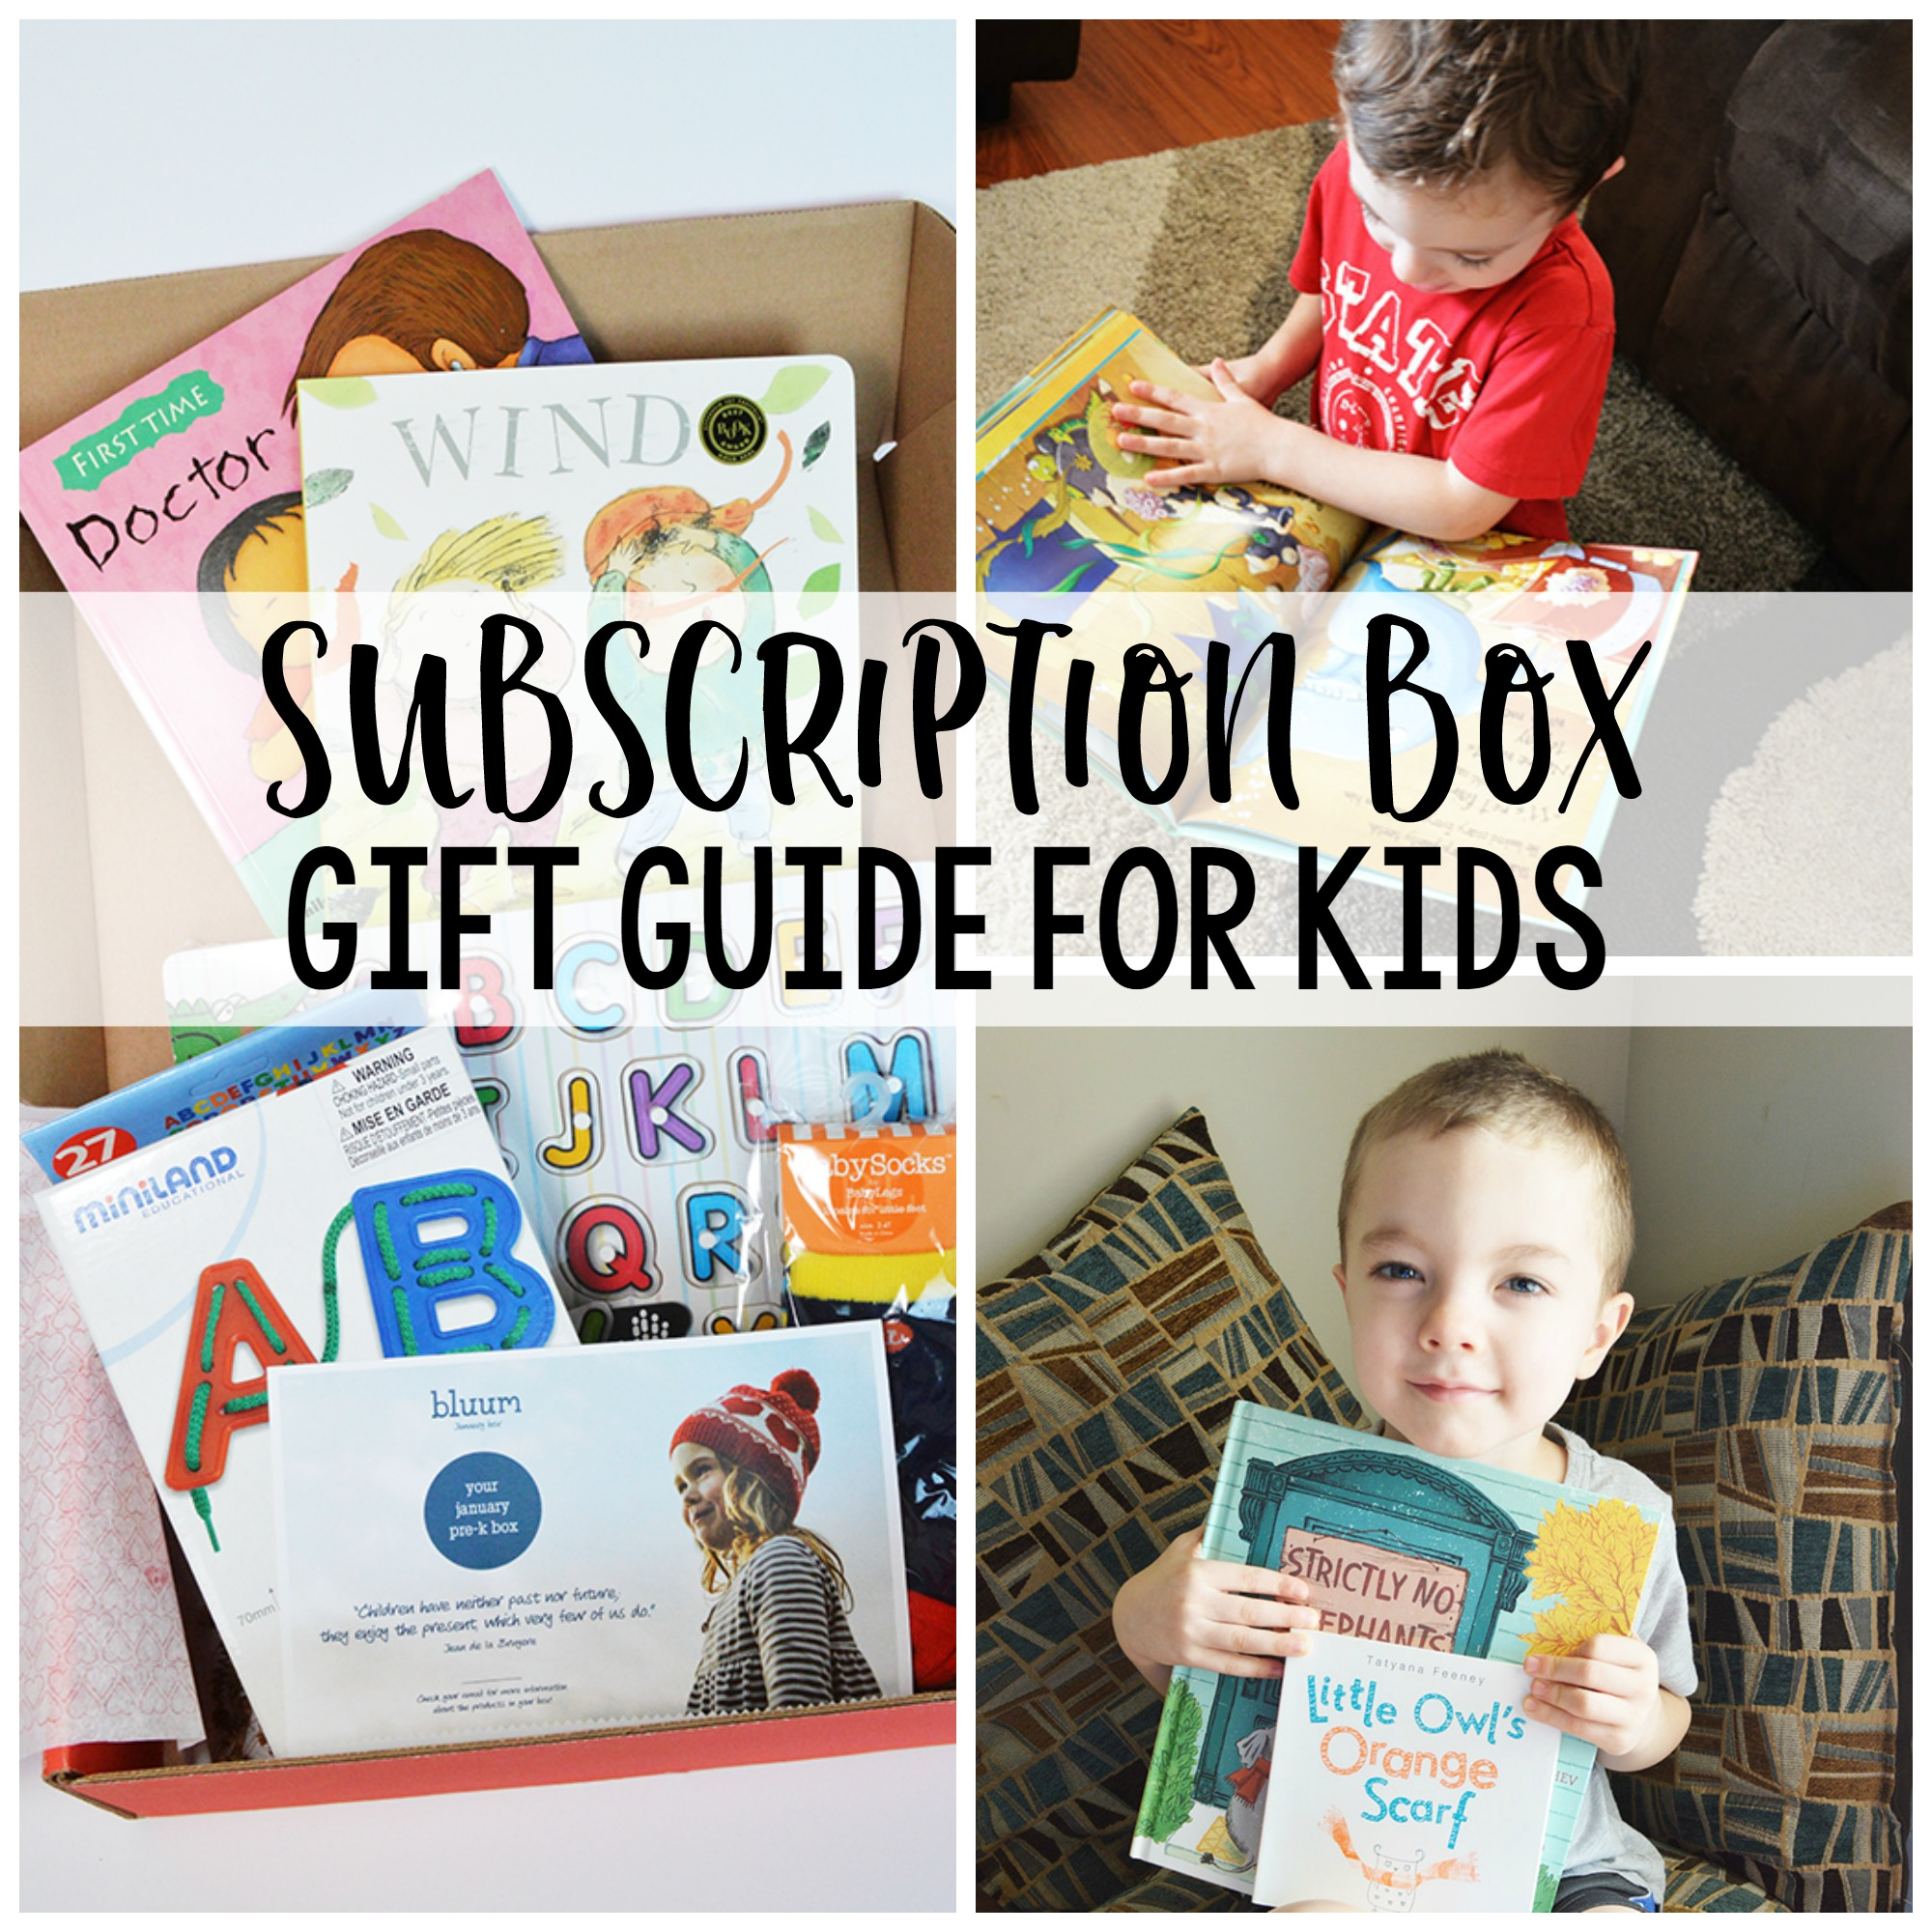 The Gift That Keeps On Giving - Subscription Box Gift Ideas for Kids